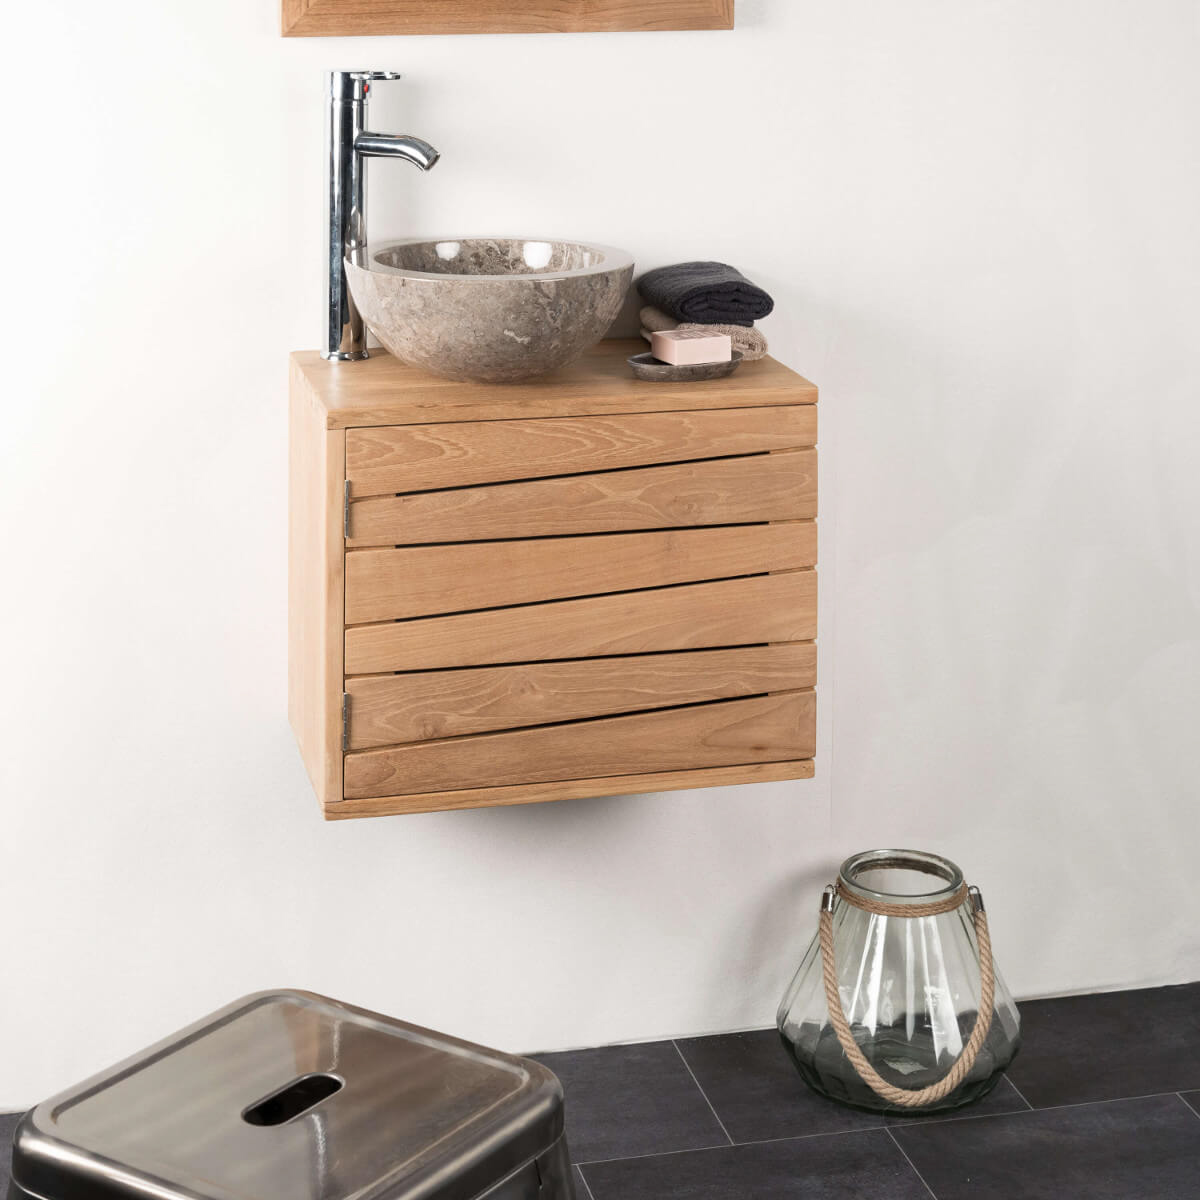 Meuble sous vasque simple vasque suspendu en bois teck for Meuble porte gobelet